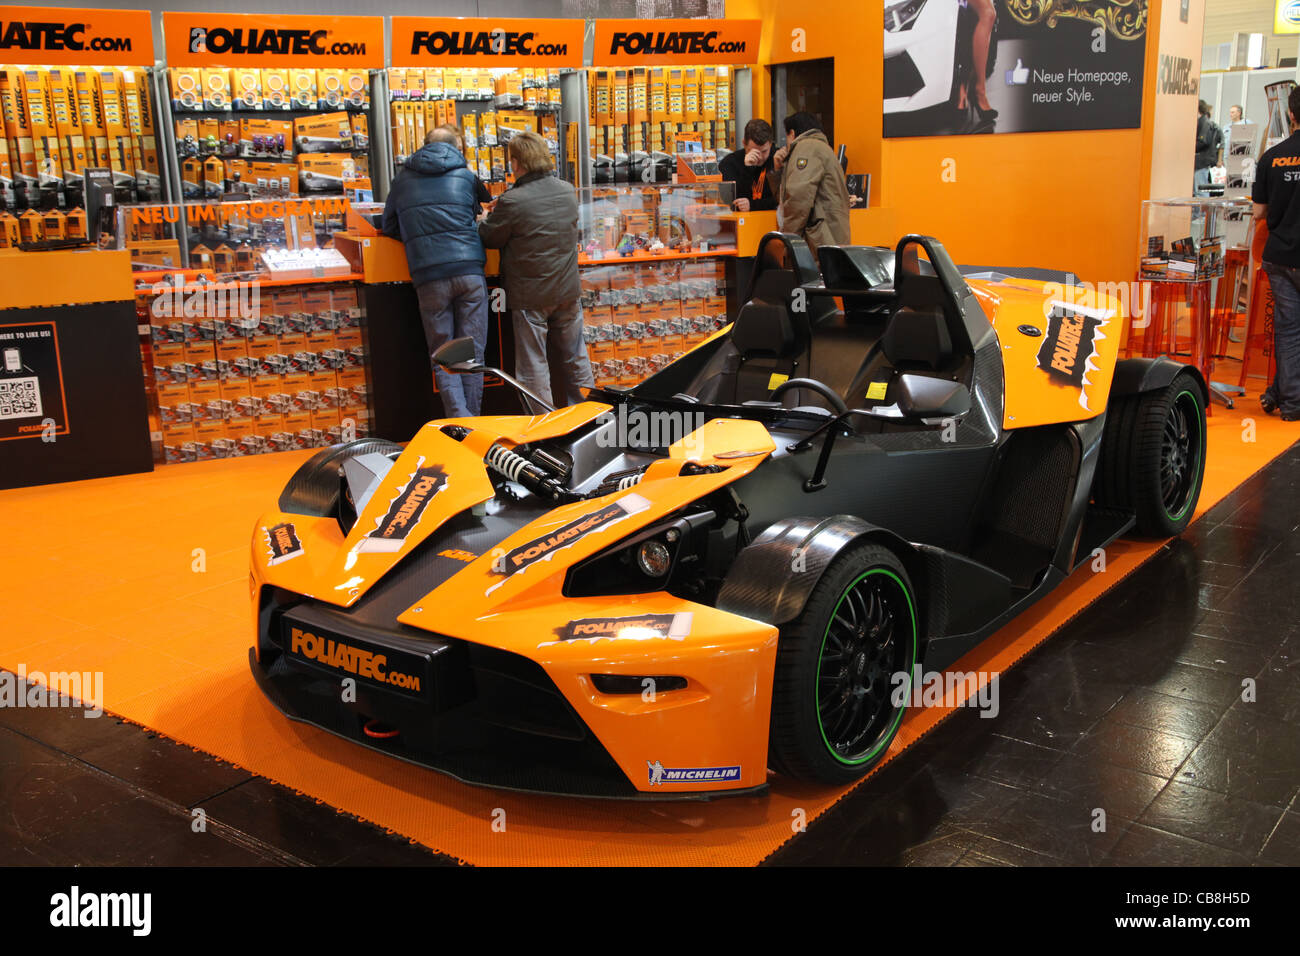 KTM X-BOW at Foliatec stand at the Essen Motor Show in Essen, Germany, on November 29, 2011 - Stock Image